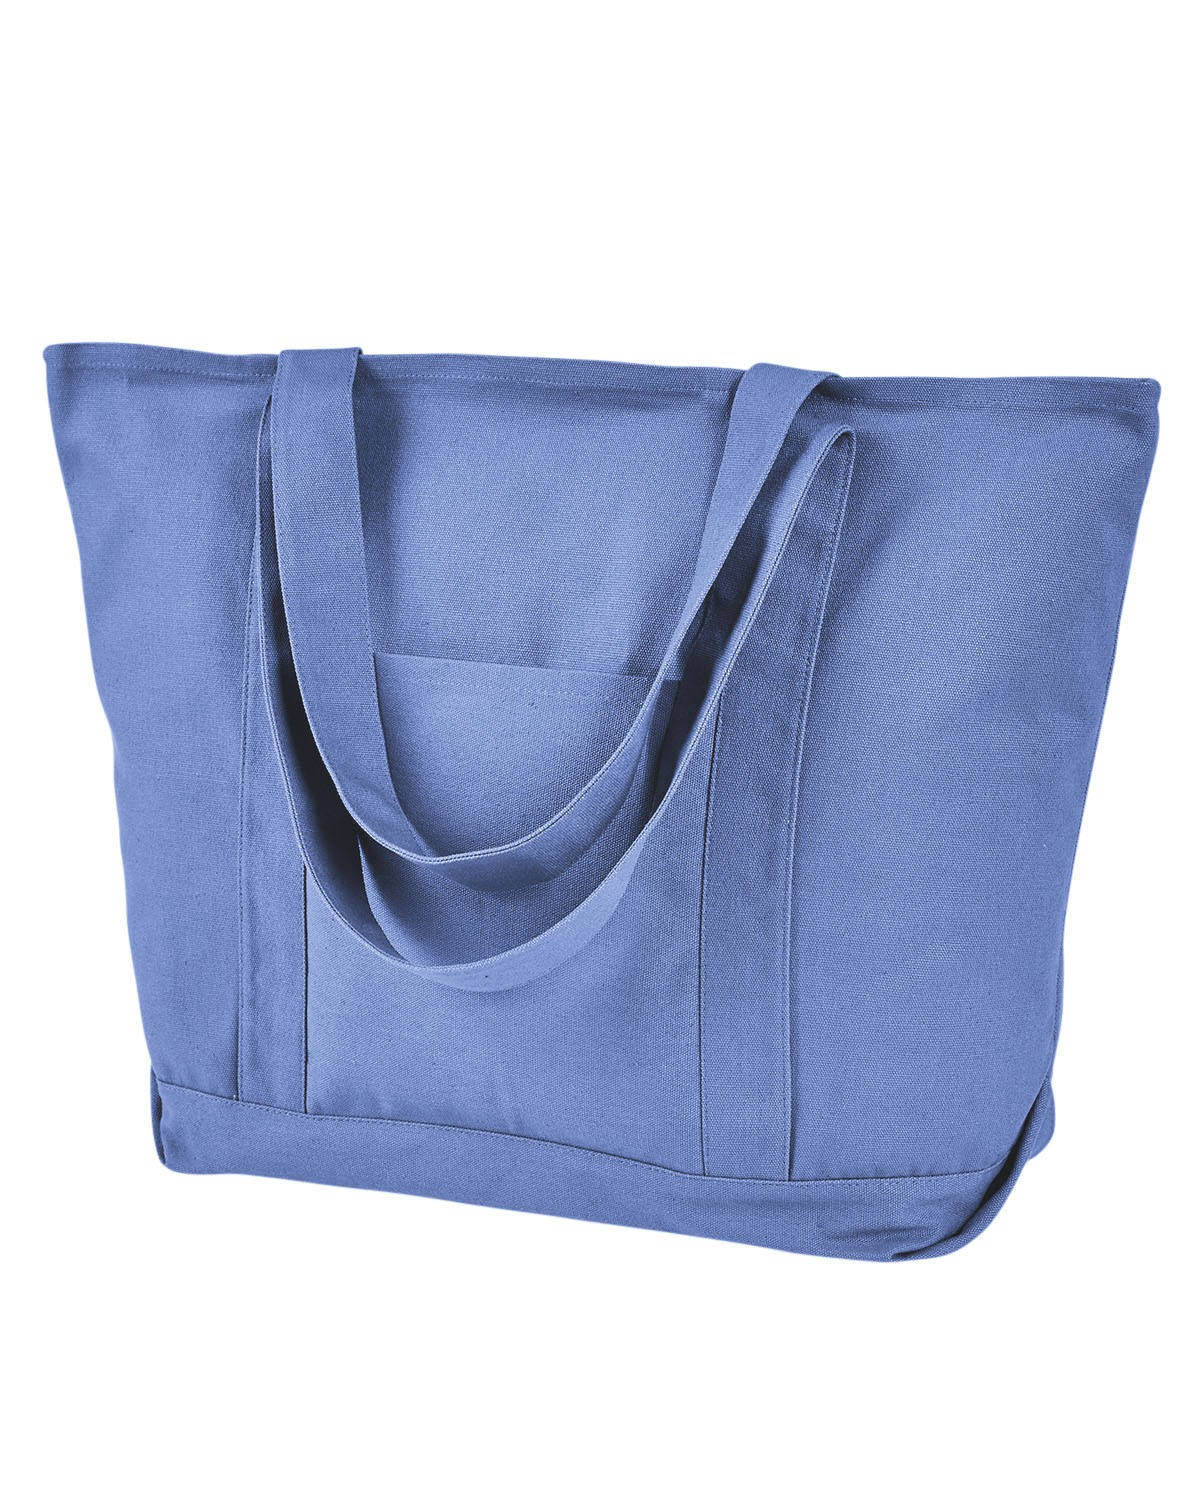 8879 Liberty Bags PERIWINKLE BLUE